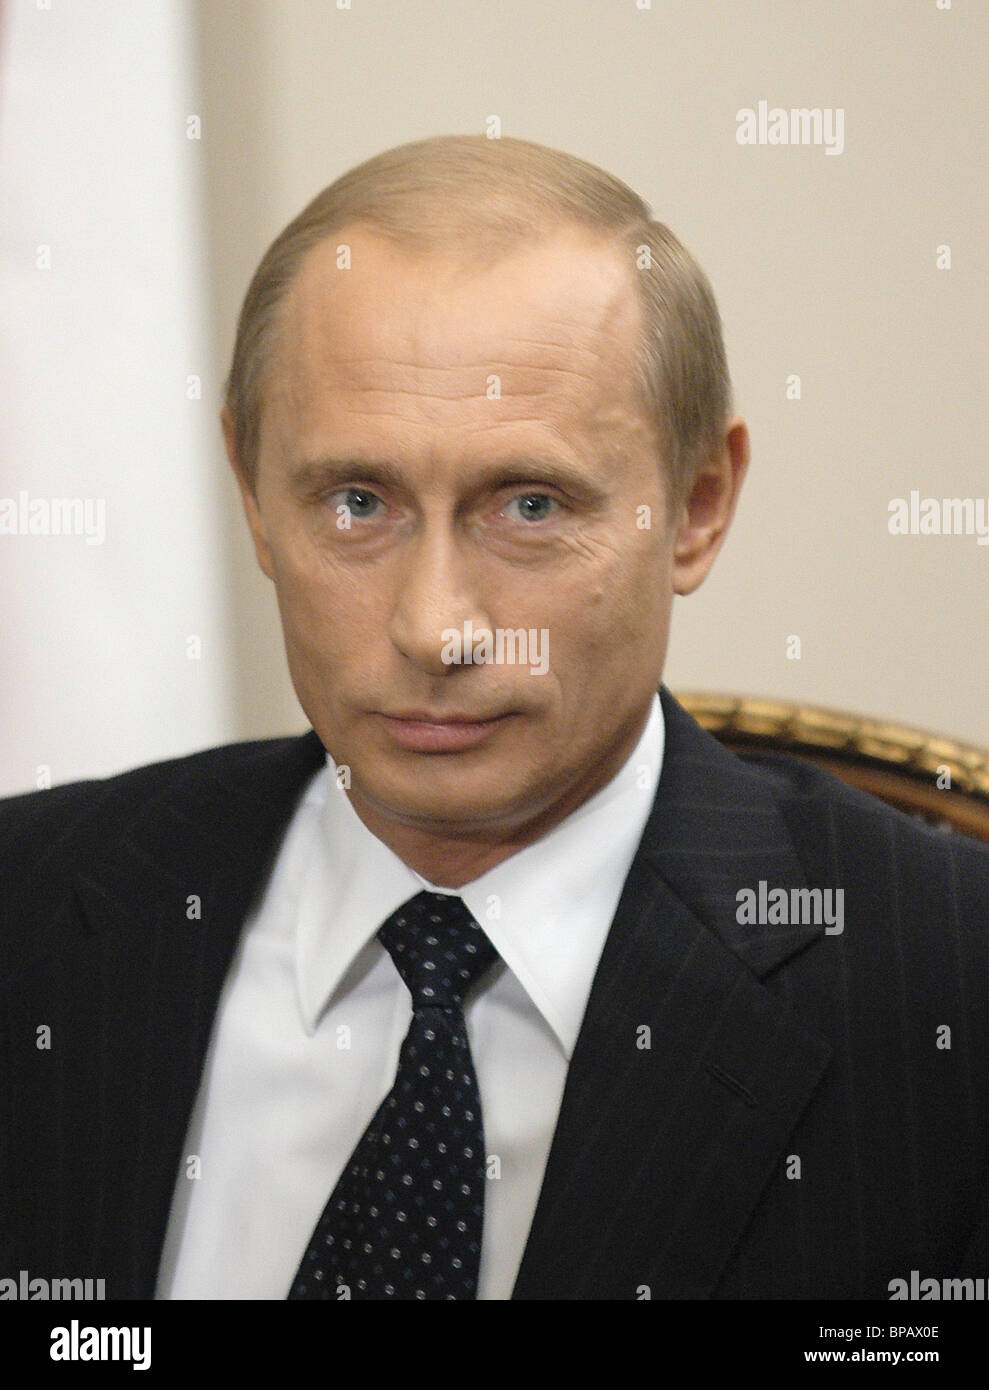 Vladimir Putin, President of the Russian Federation. 2003 - Stock Image